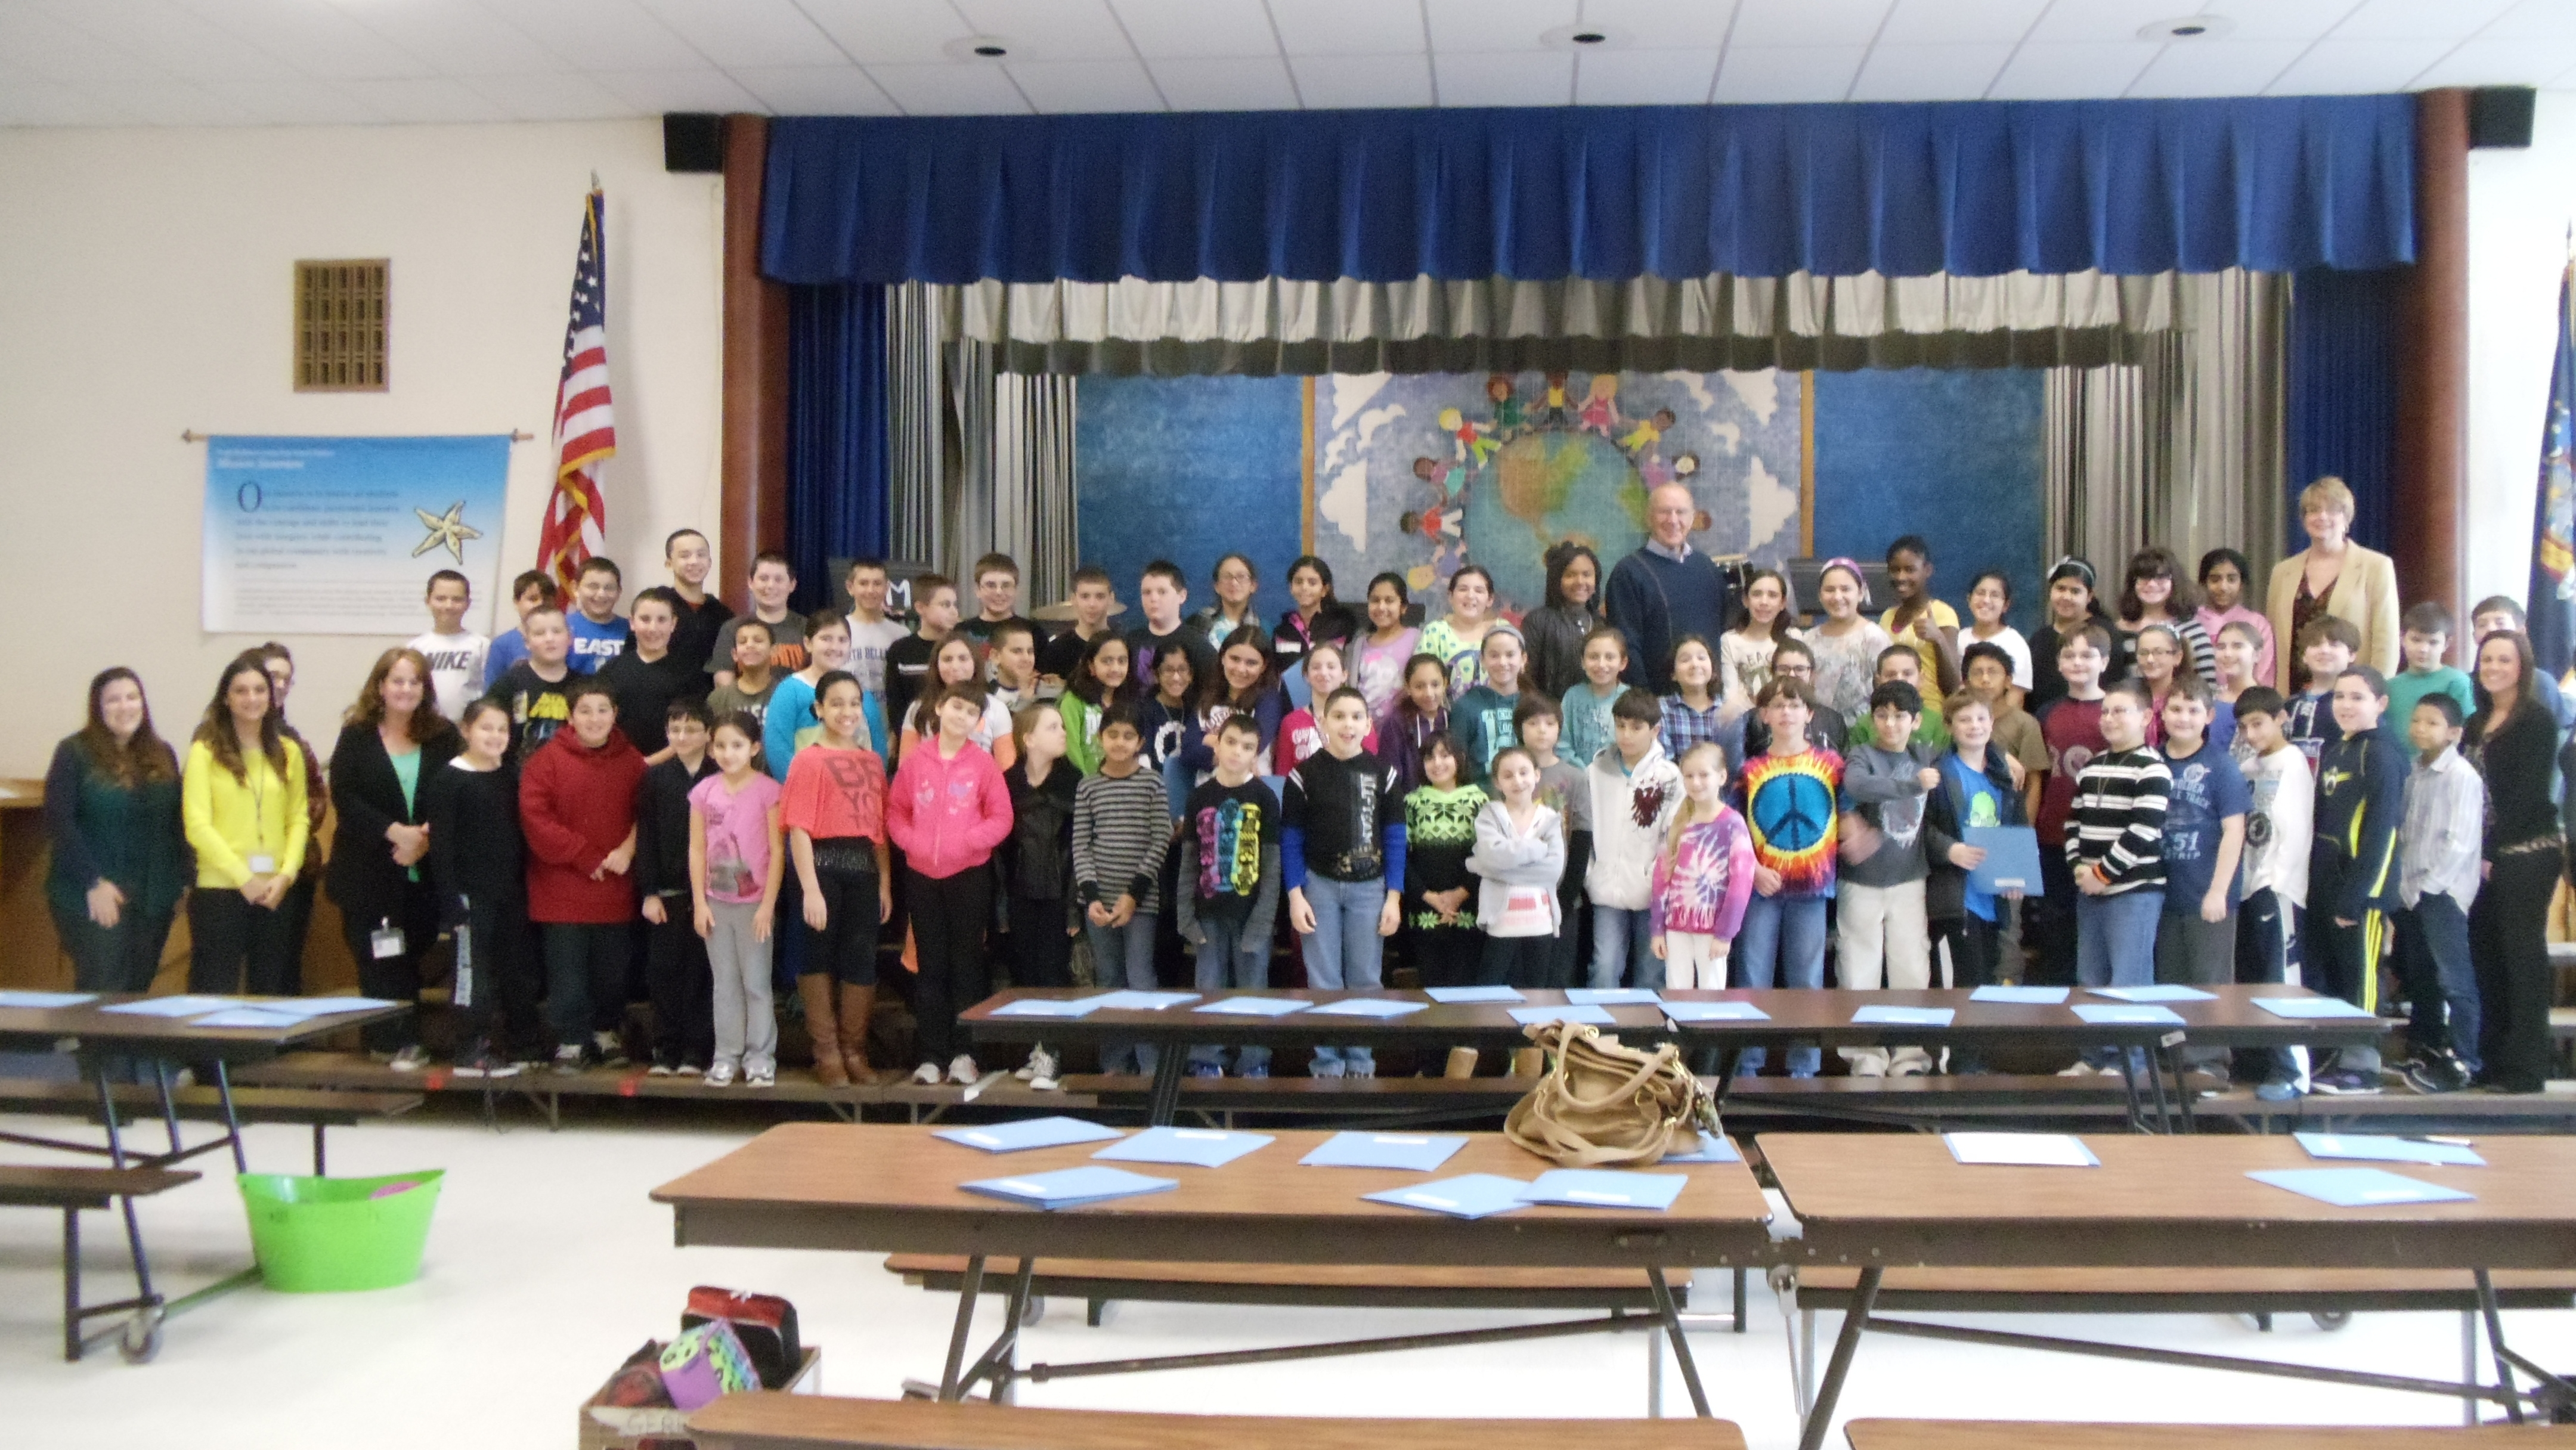 Assemblyman Dave McDonough (R,C,I-Merrick) joins the fifth grade class at Saw Mill Elementary School, where he discussed the similarities and differences between the New York State and U.S. governments.